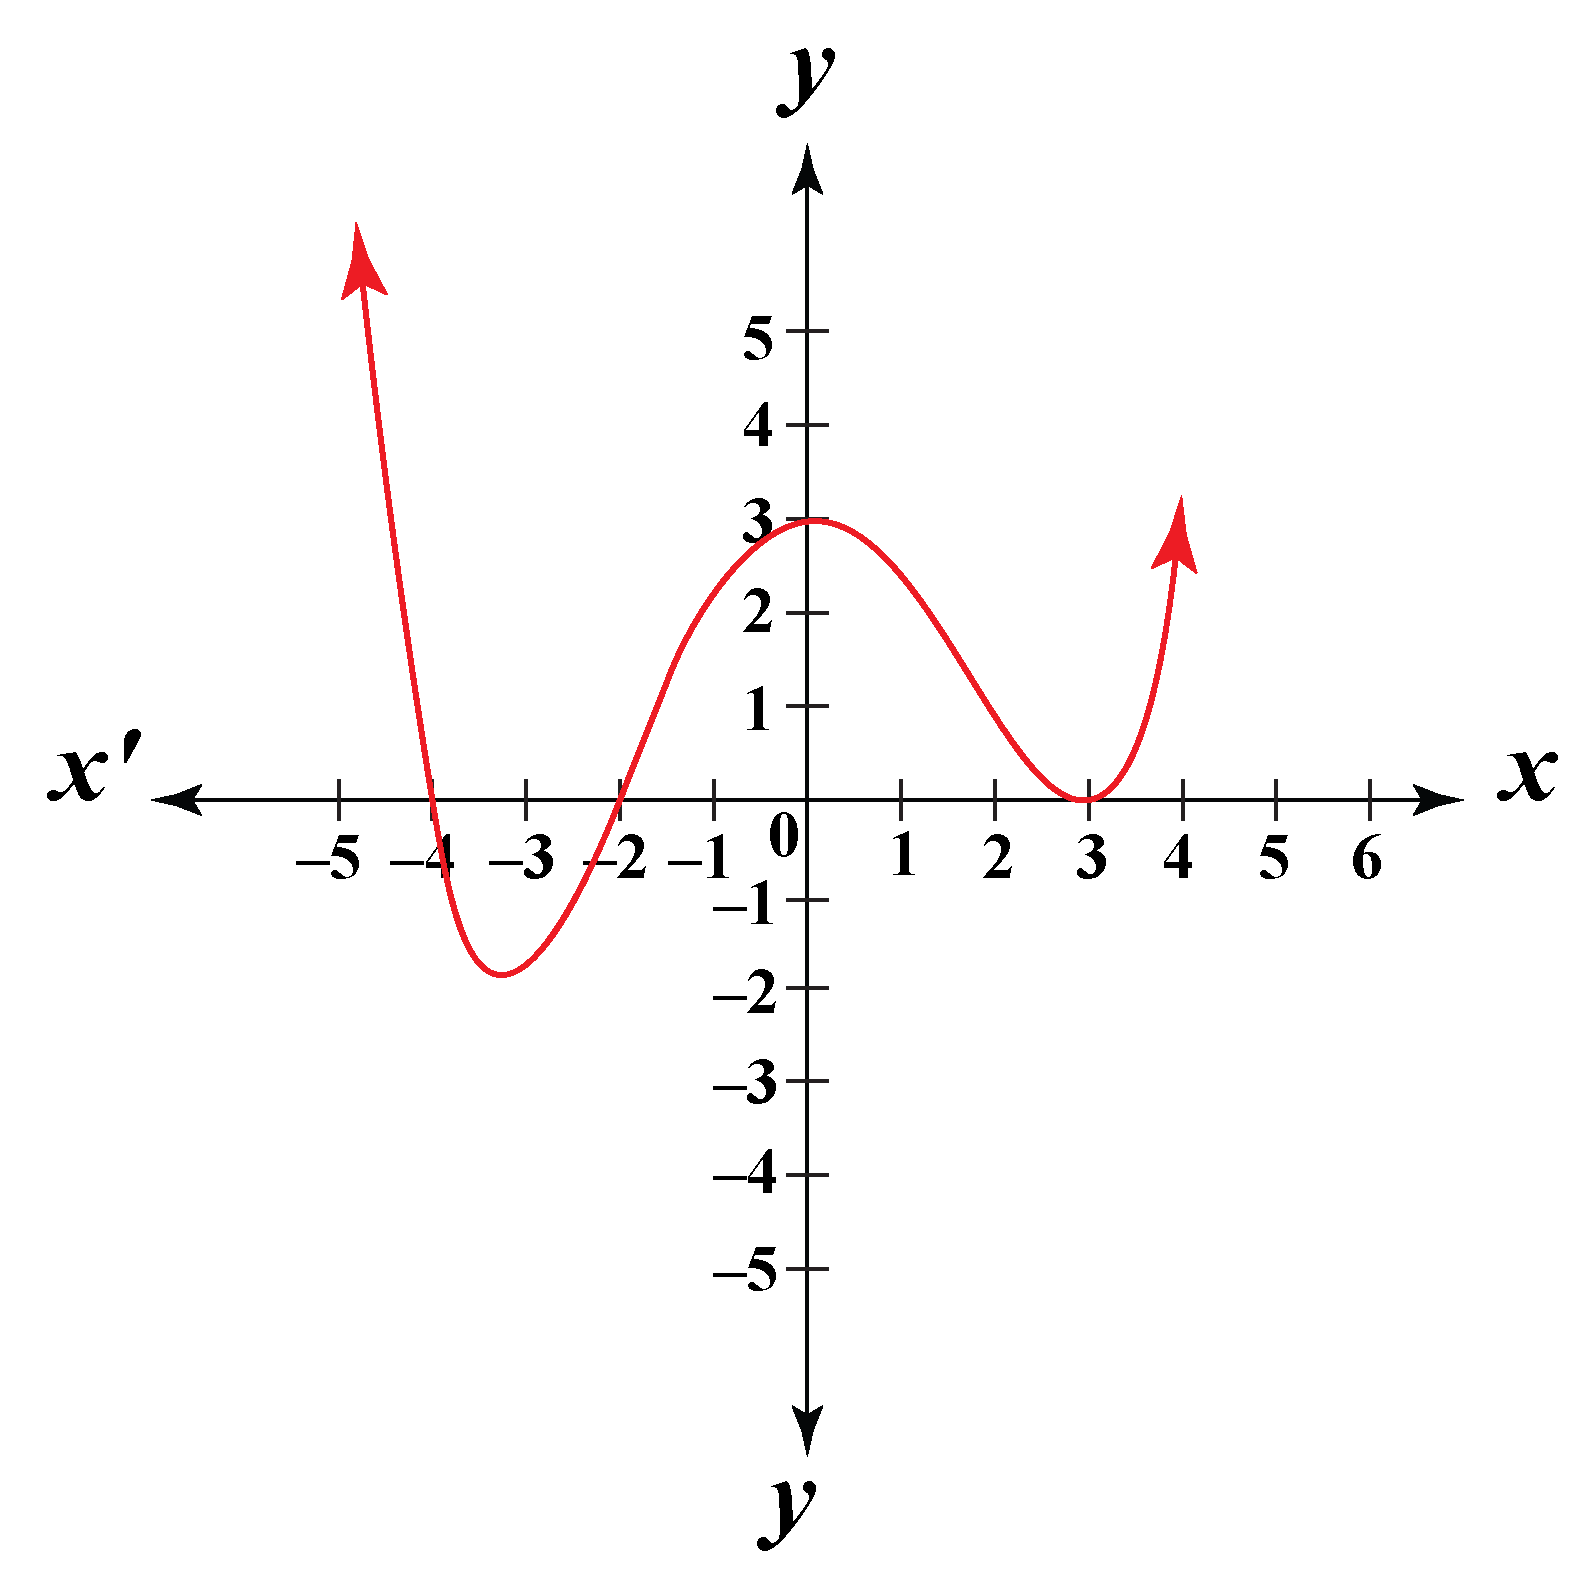 graph of a polynomial